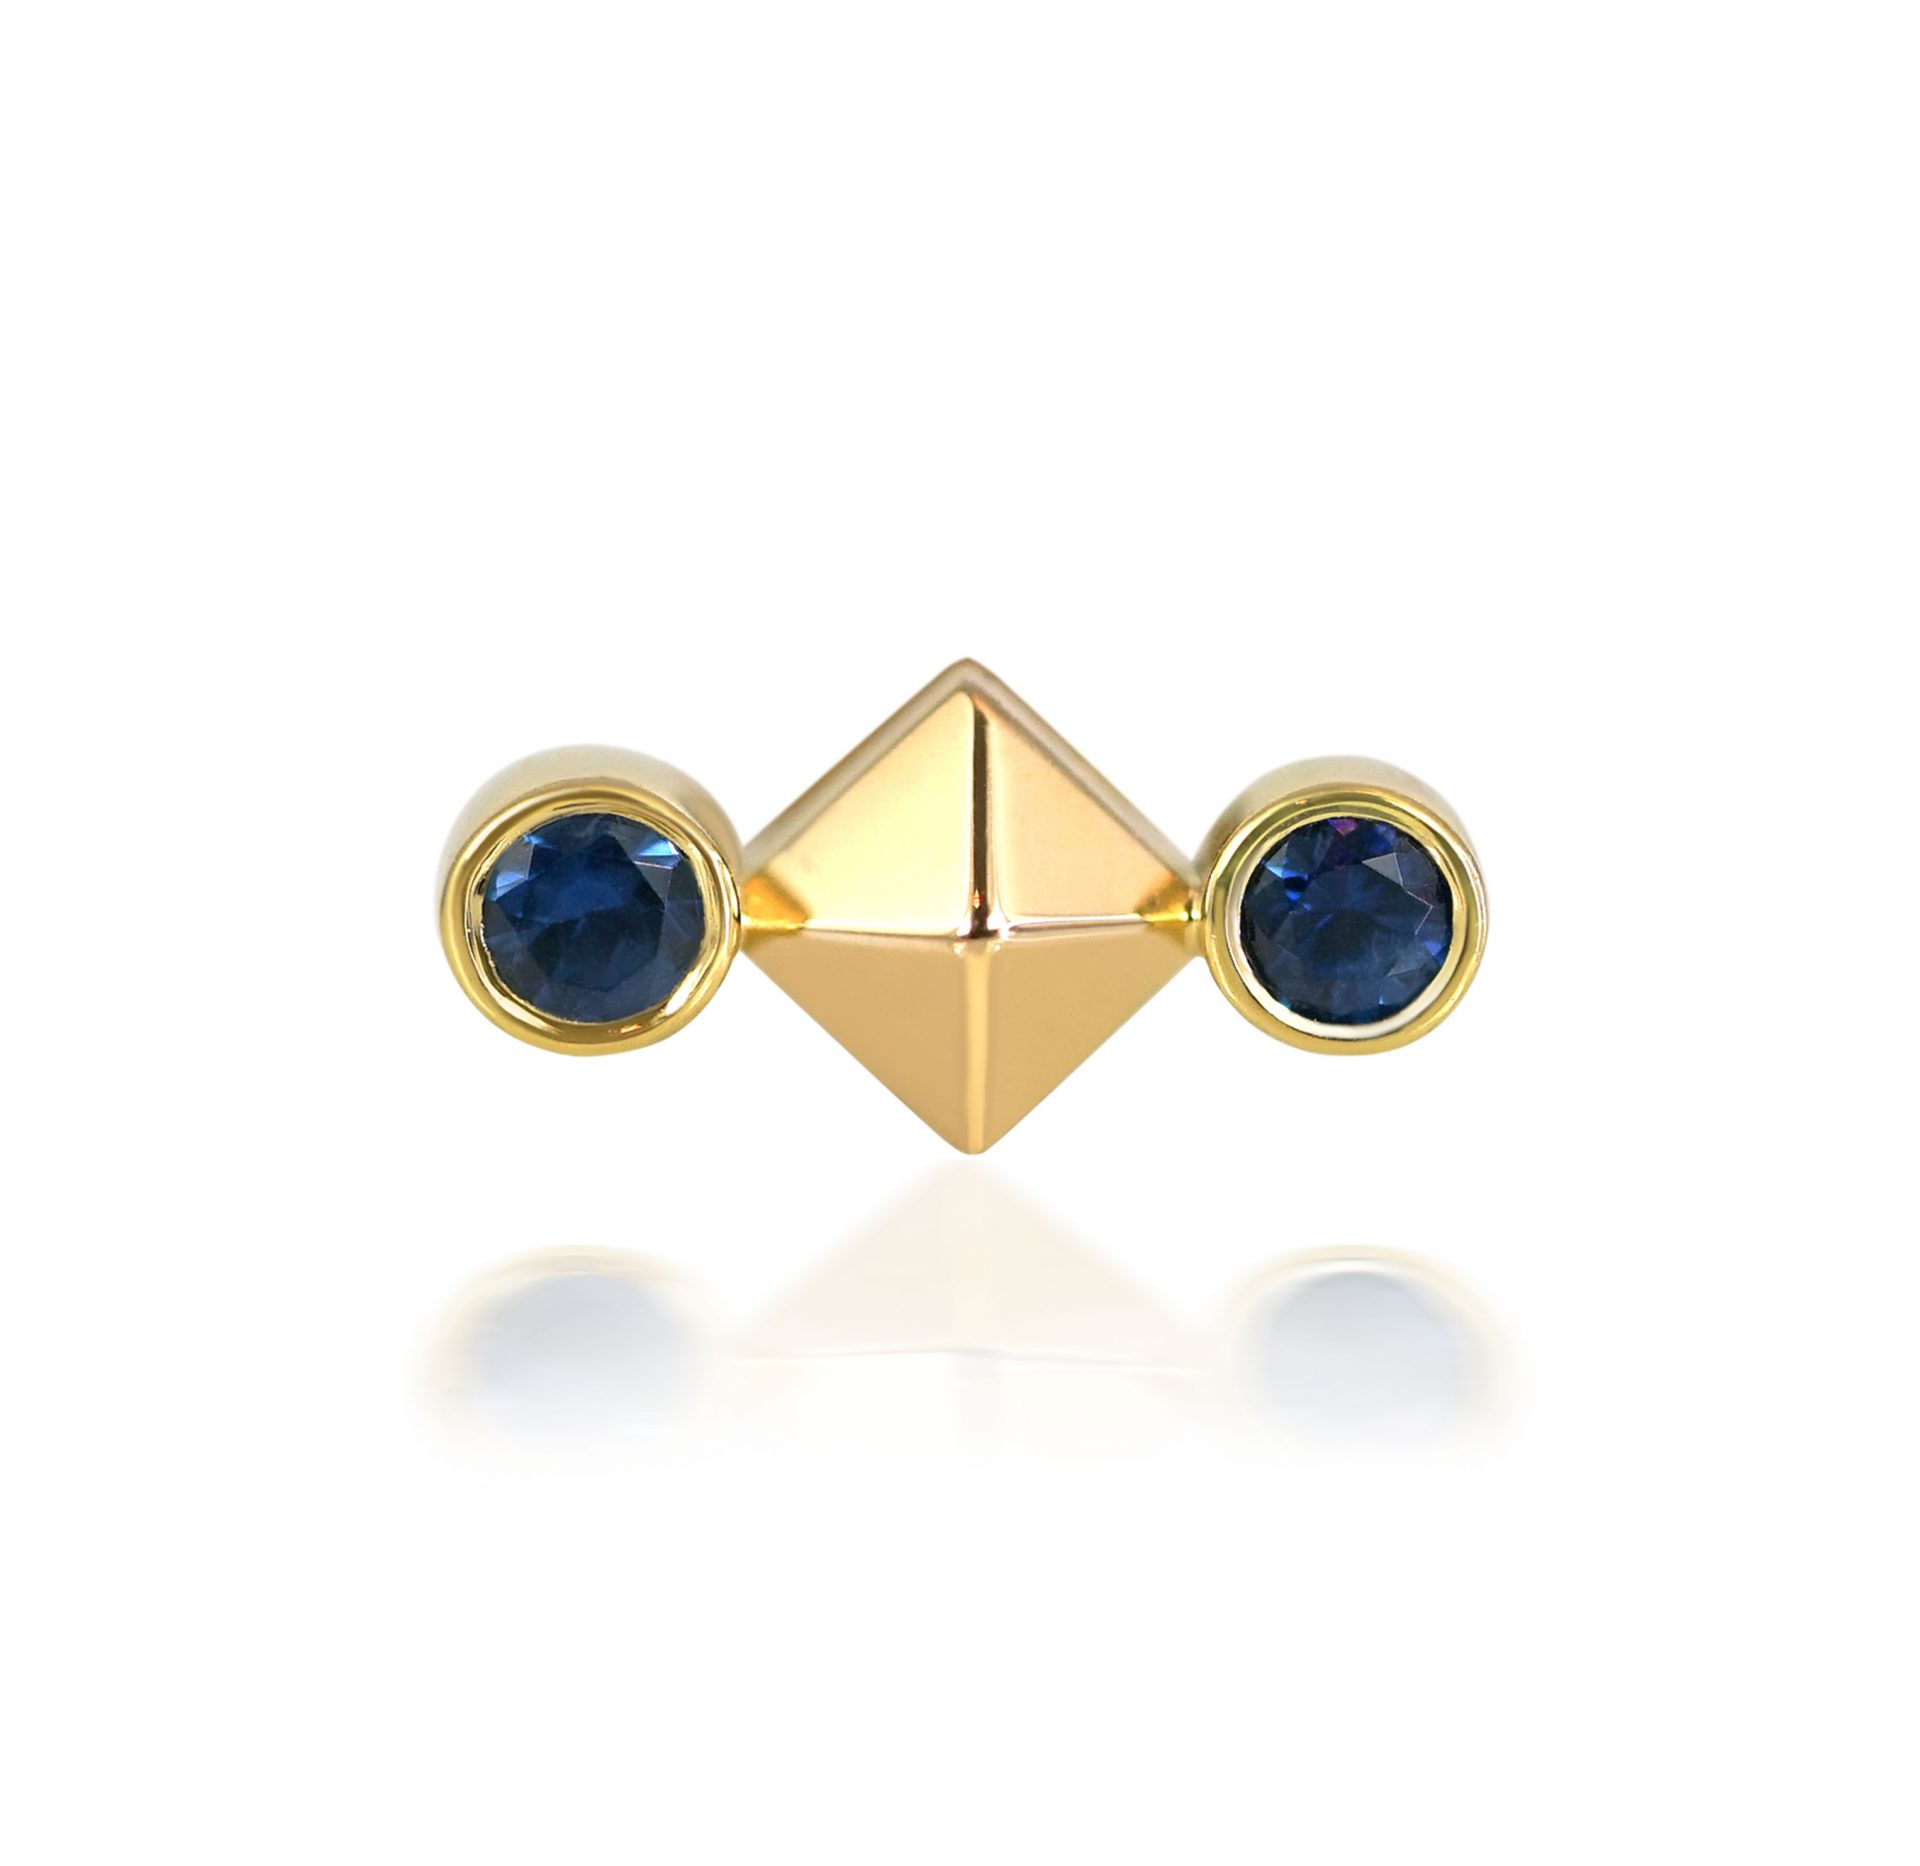 Cornflower-Blue-Natural-Sapphire-Cancer-Jewellery-Earring-Birthday-Gift-Cancer–18k-Solid-Gold-Cartilage-Piercings-Astrology-Sign-Lena-Cohen-British-Designer